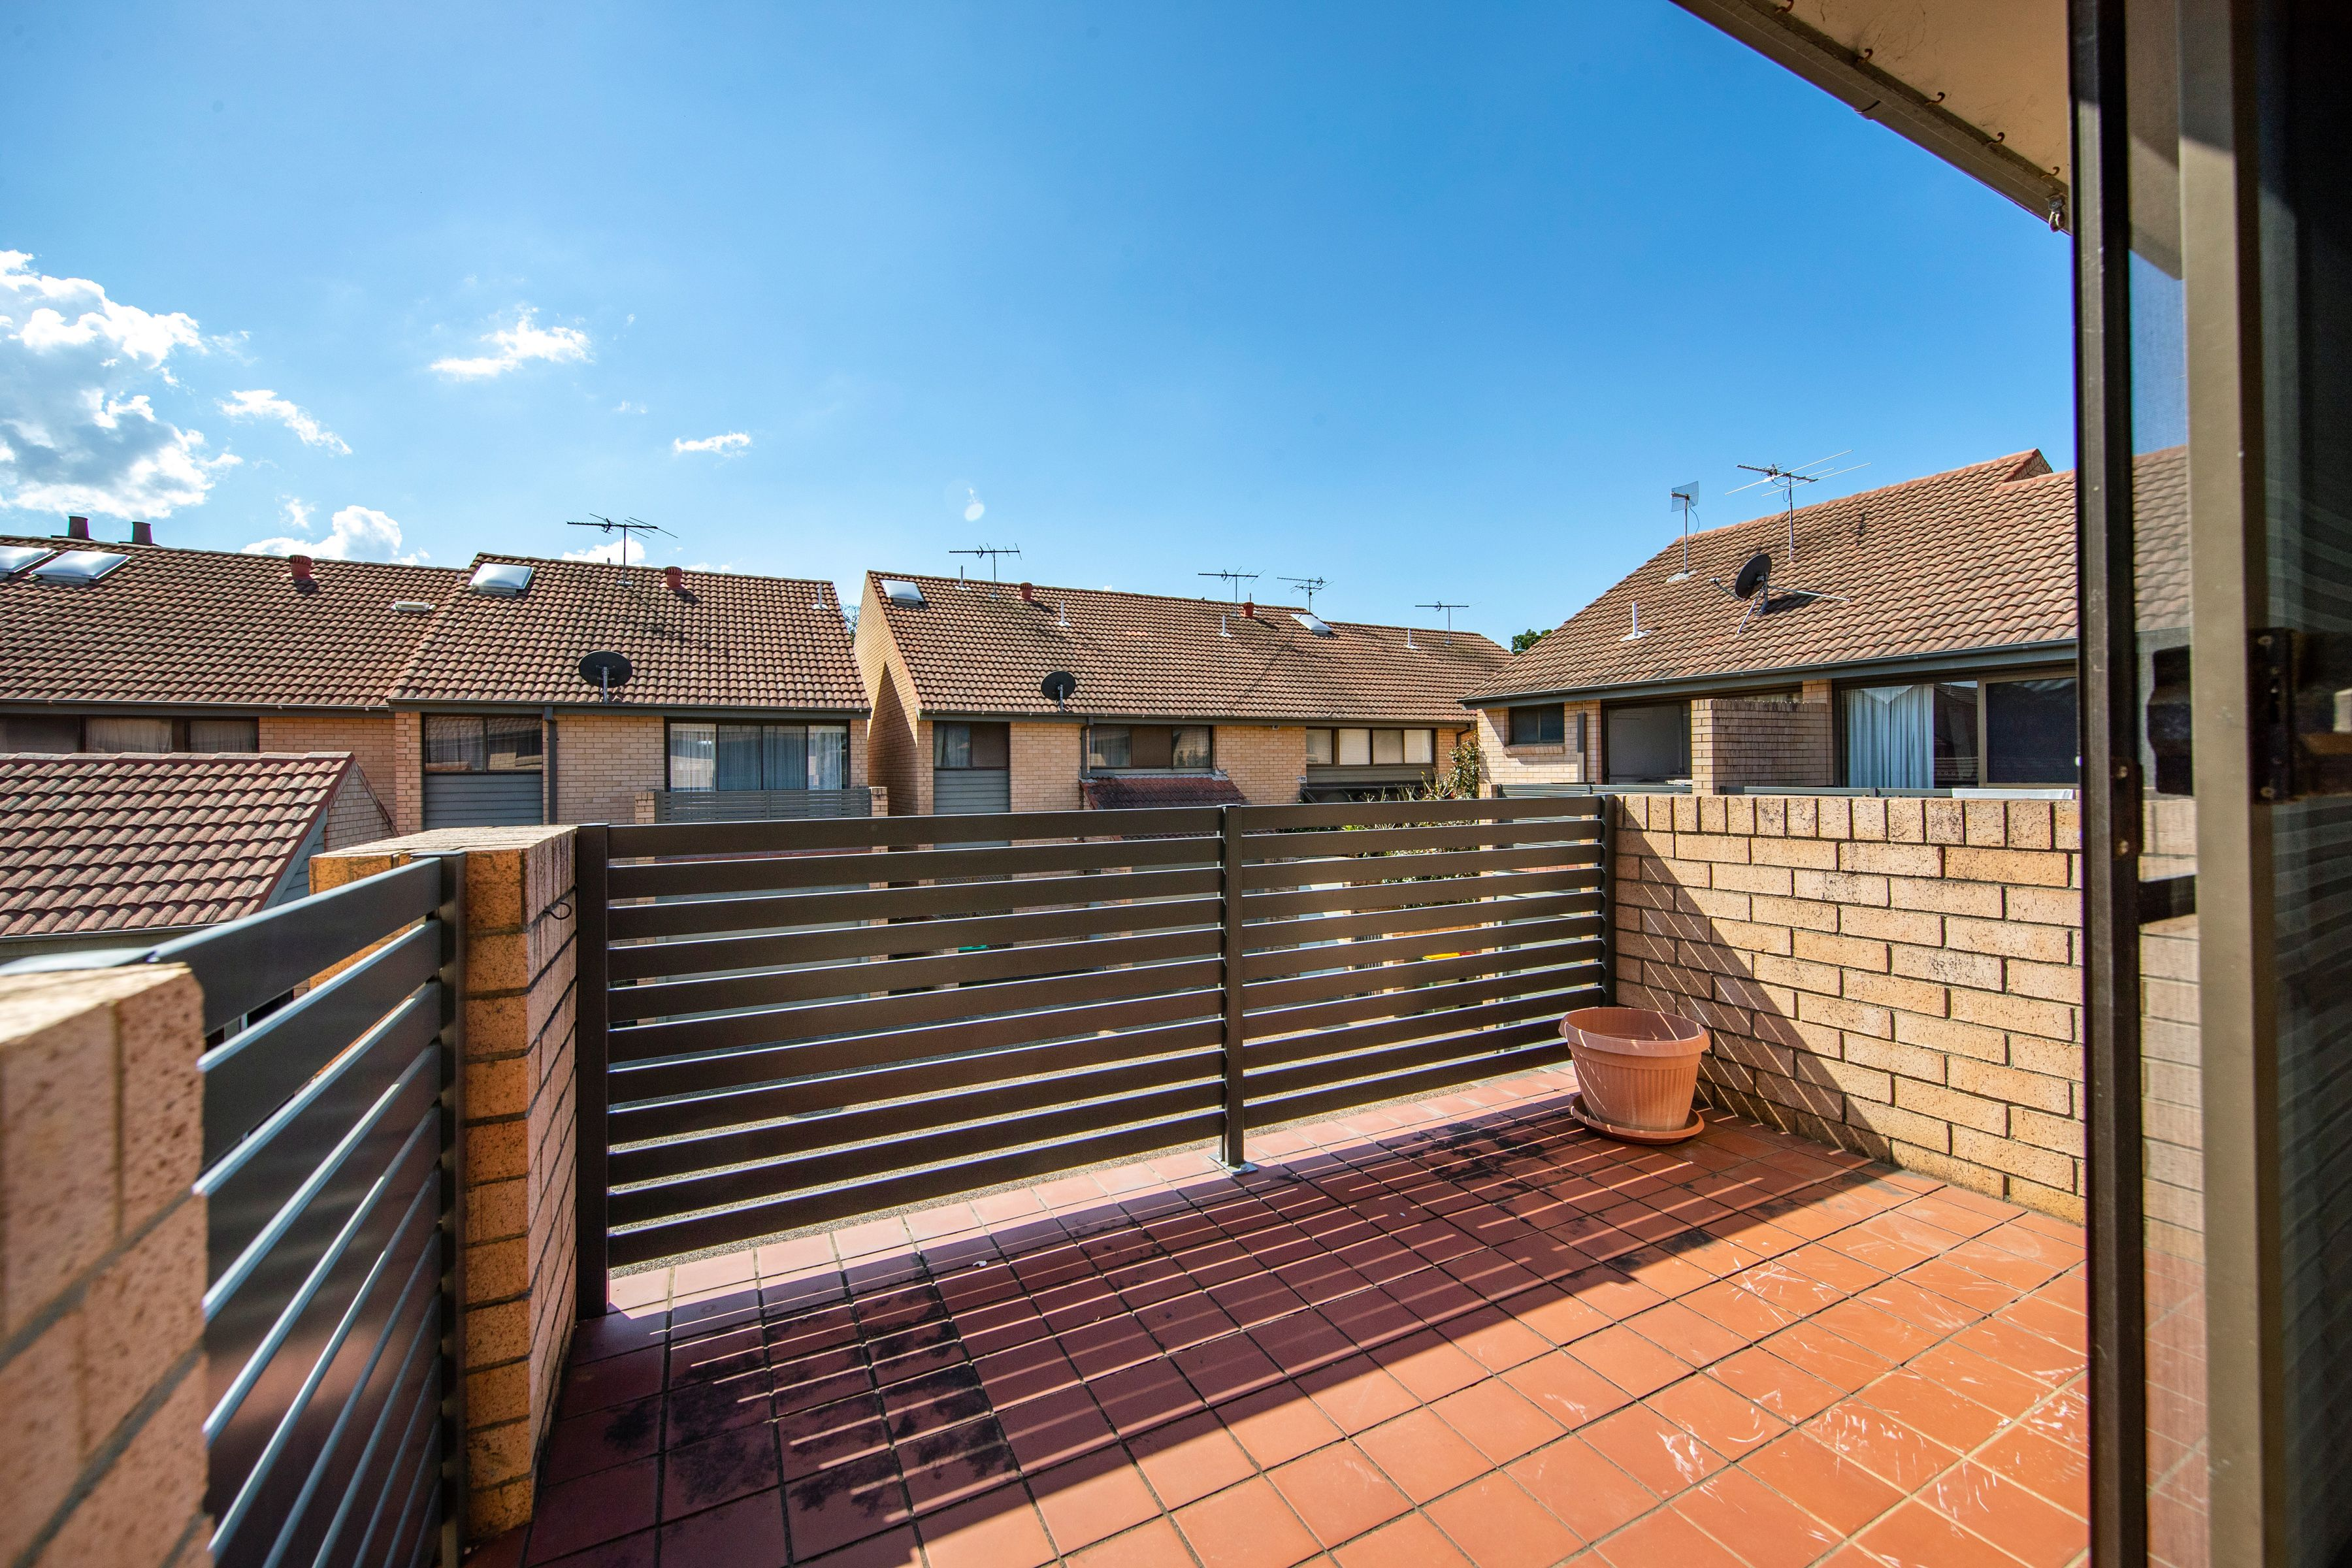 13/216 Union Street, Merewether